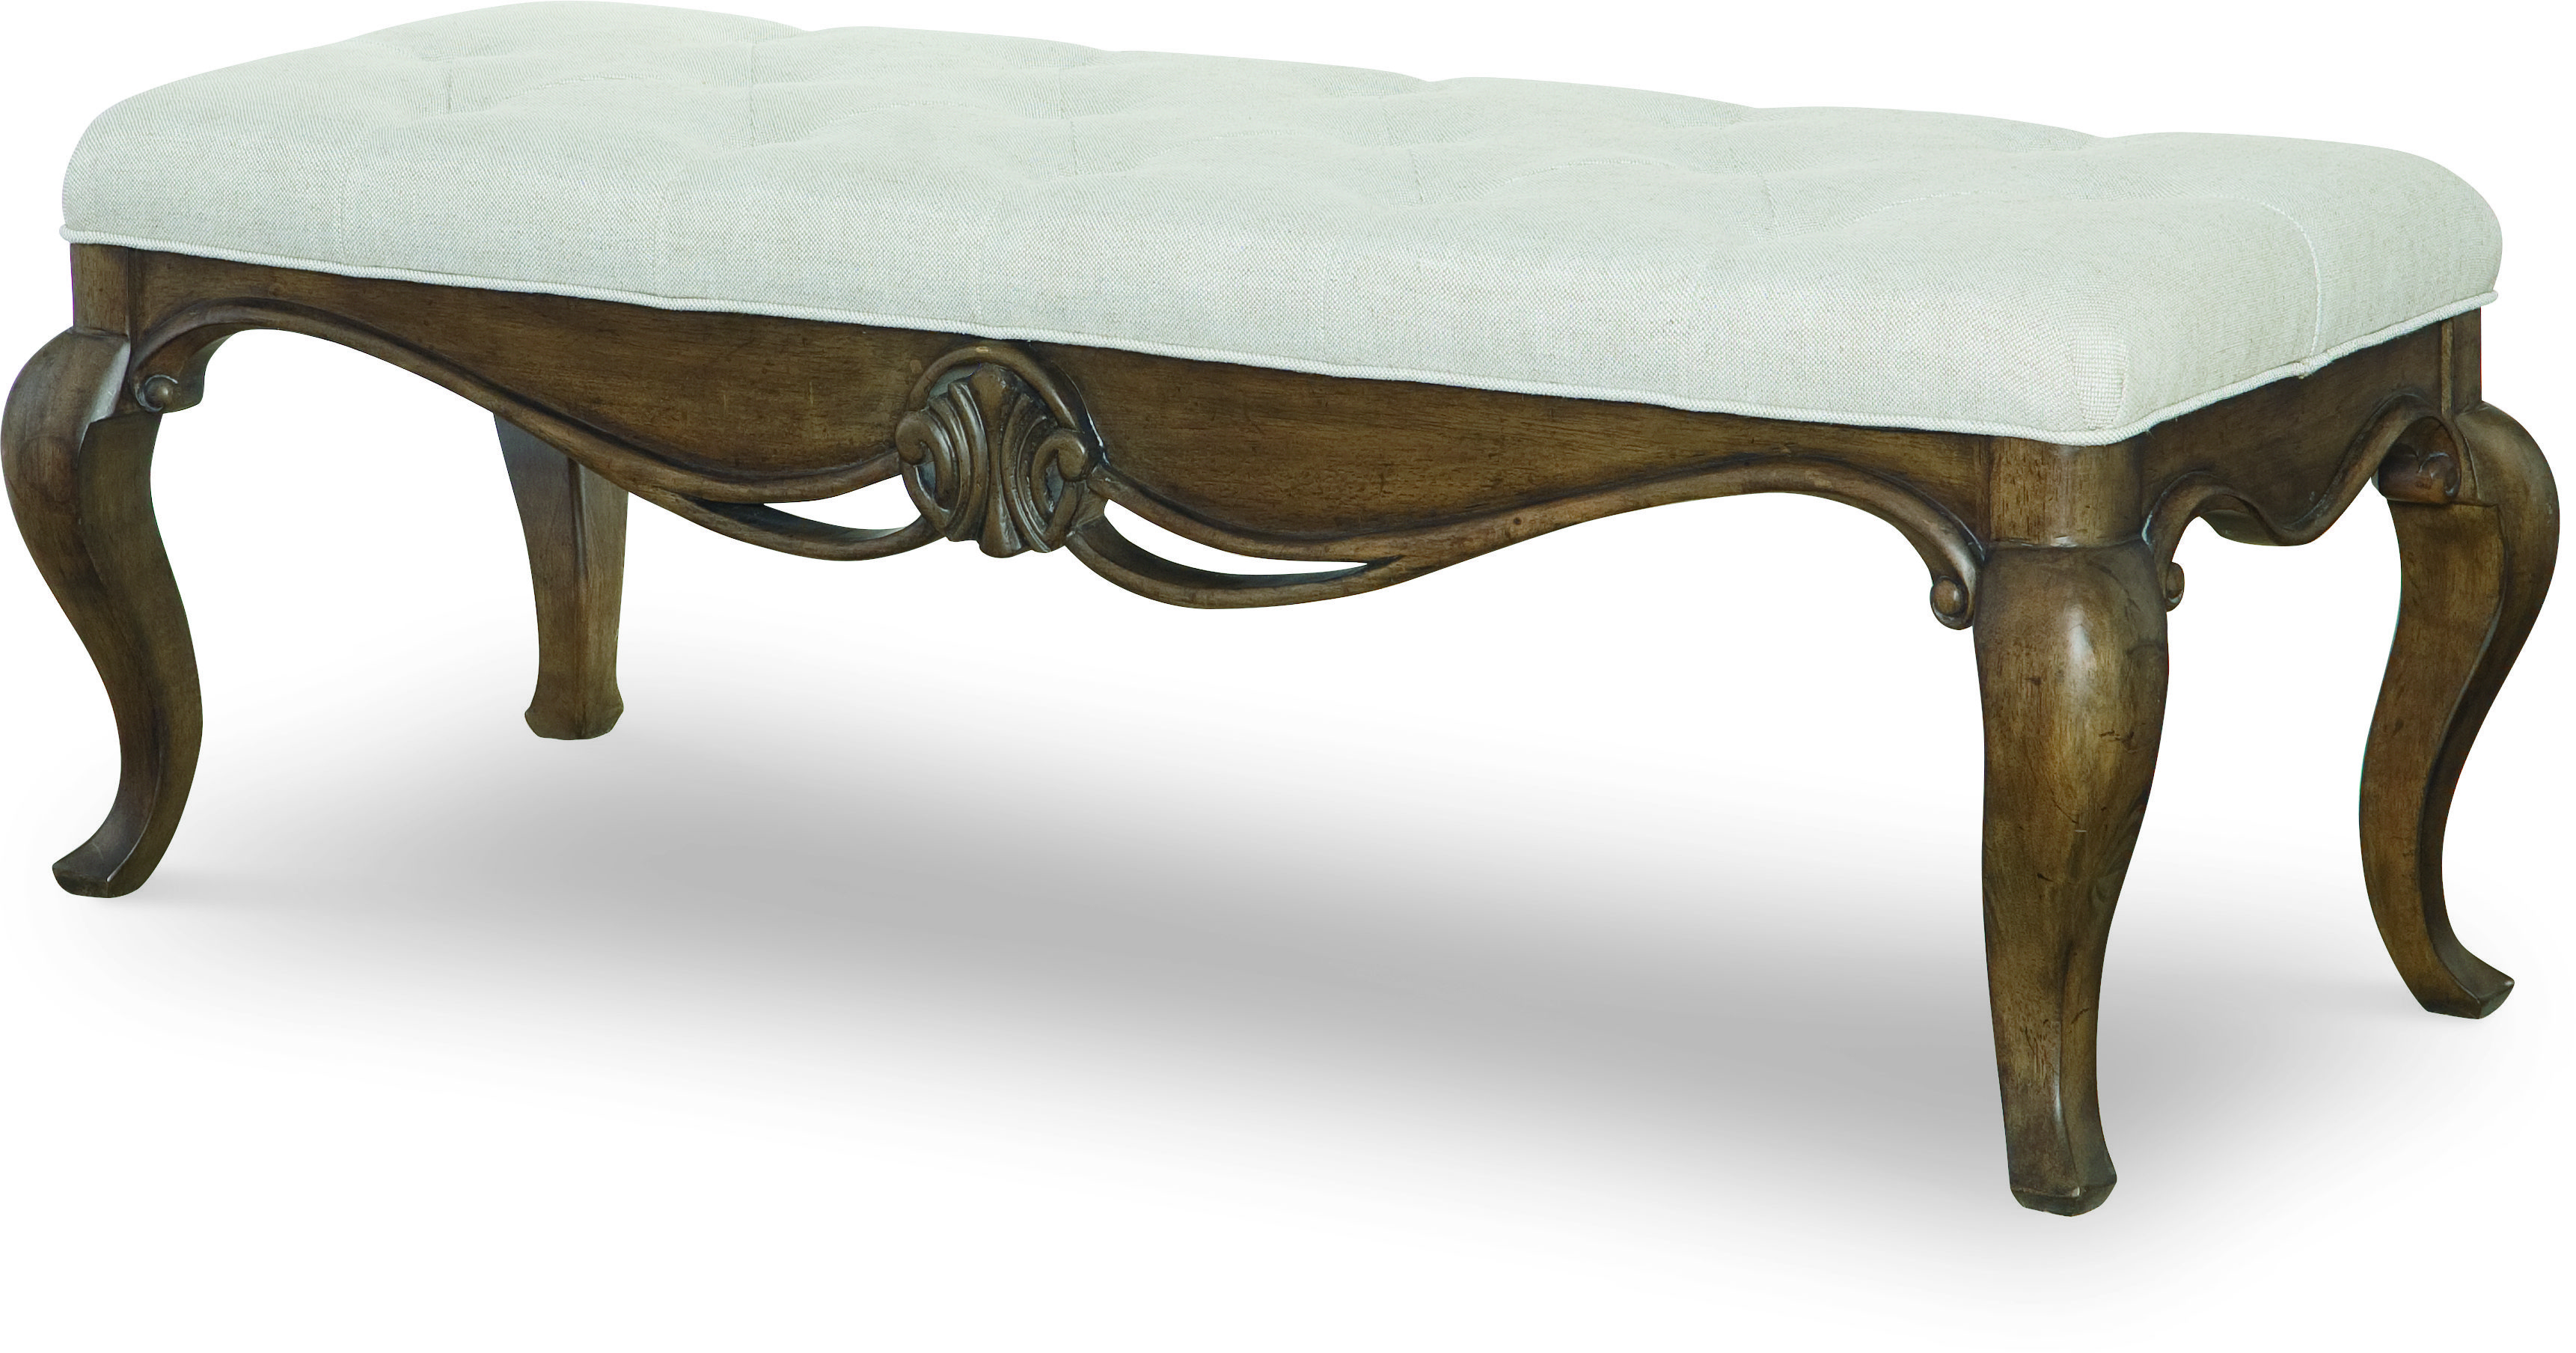 Legacy Classic Renaissance Upholstered Bench  - Item Number: 5500-4800